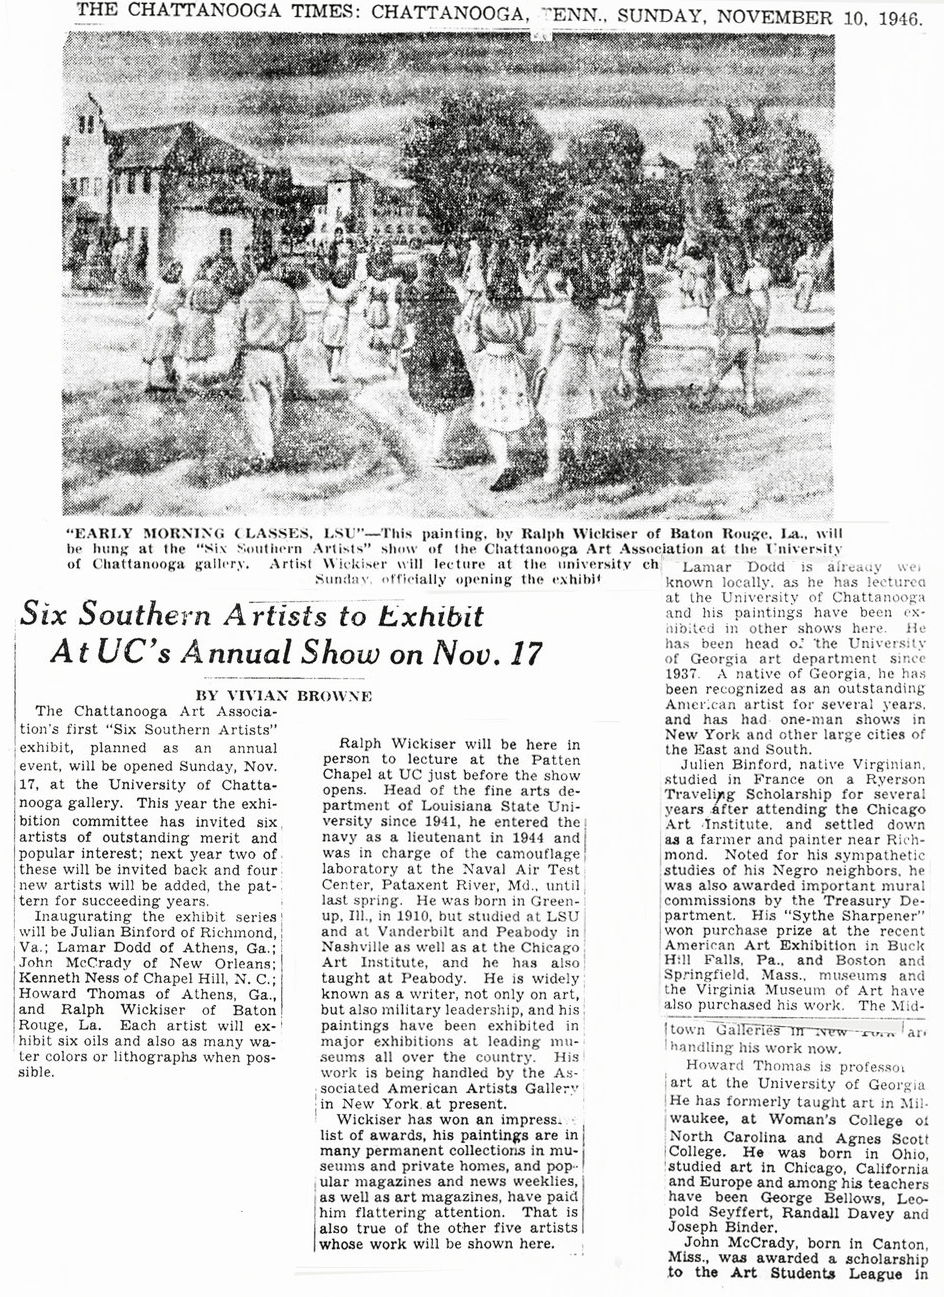 thechattanoogatimes1946.jpg